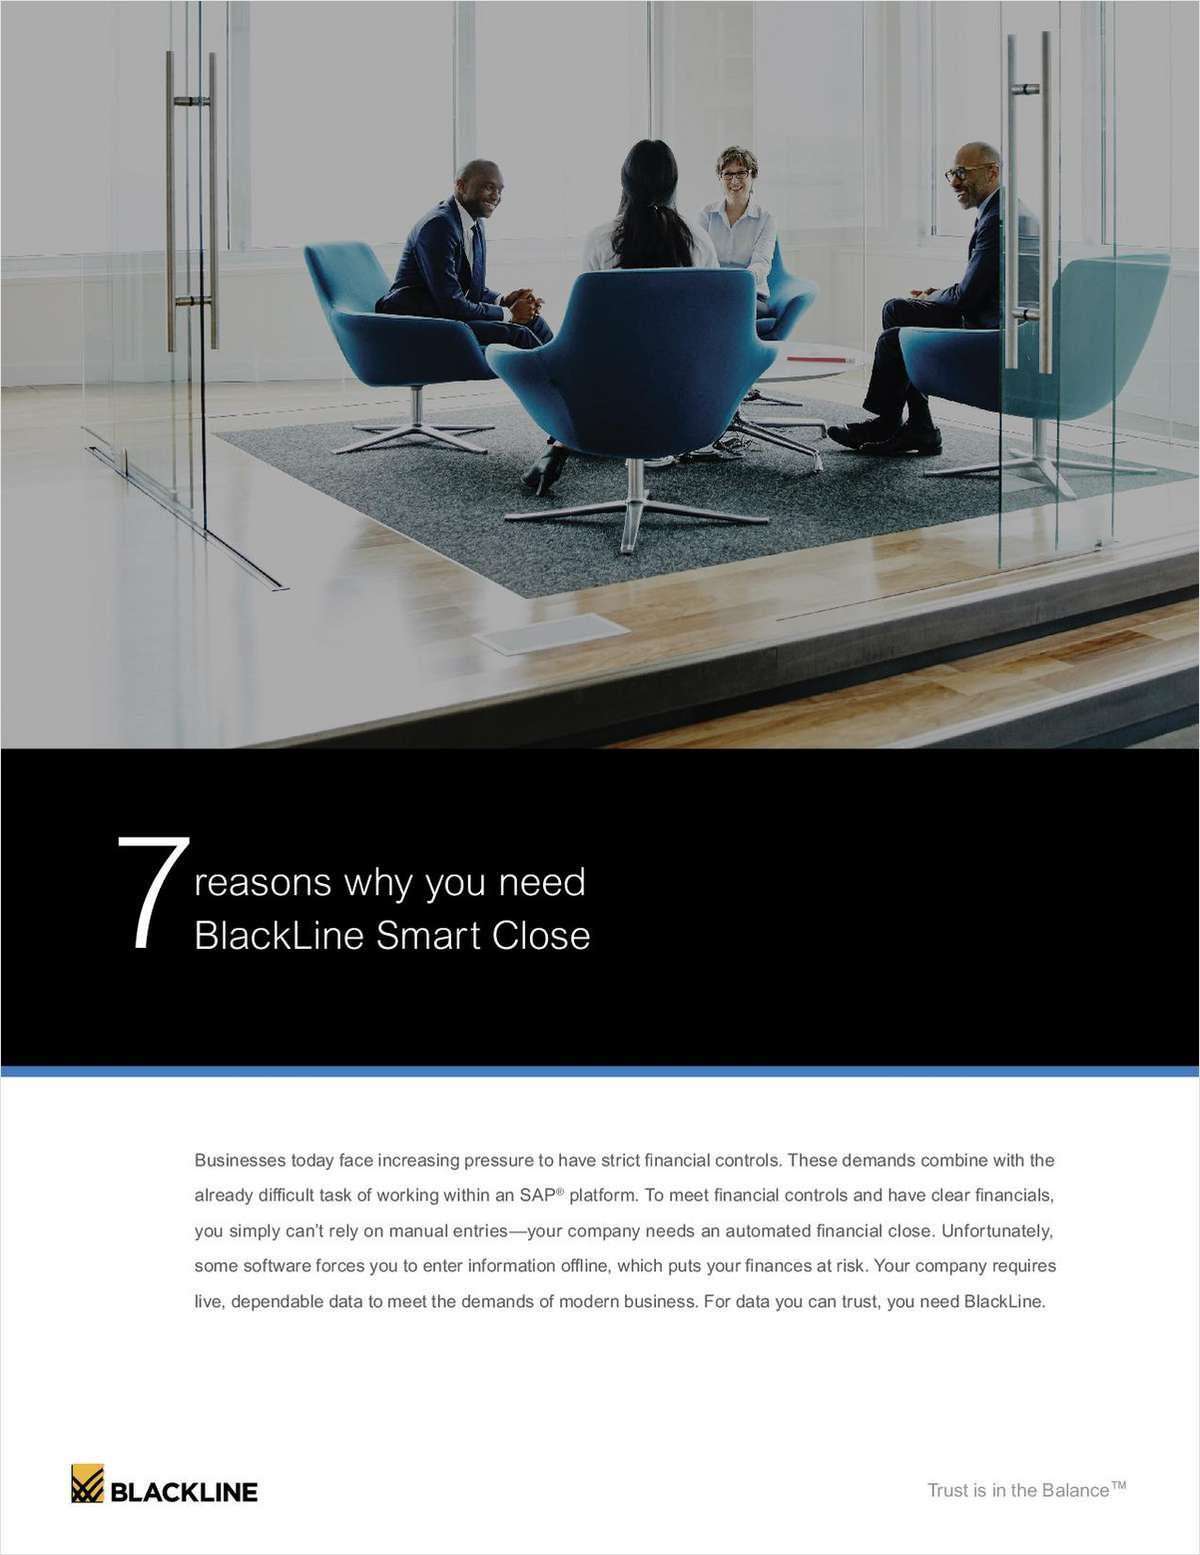 7 Reasons Why You Need BlackLine Smart Close for SAP